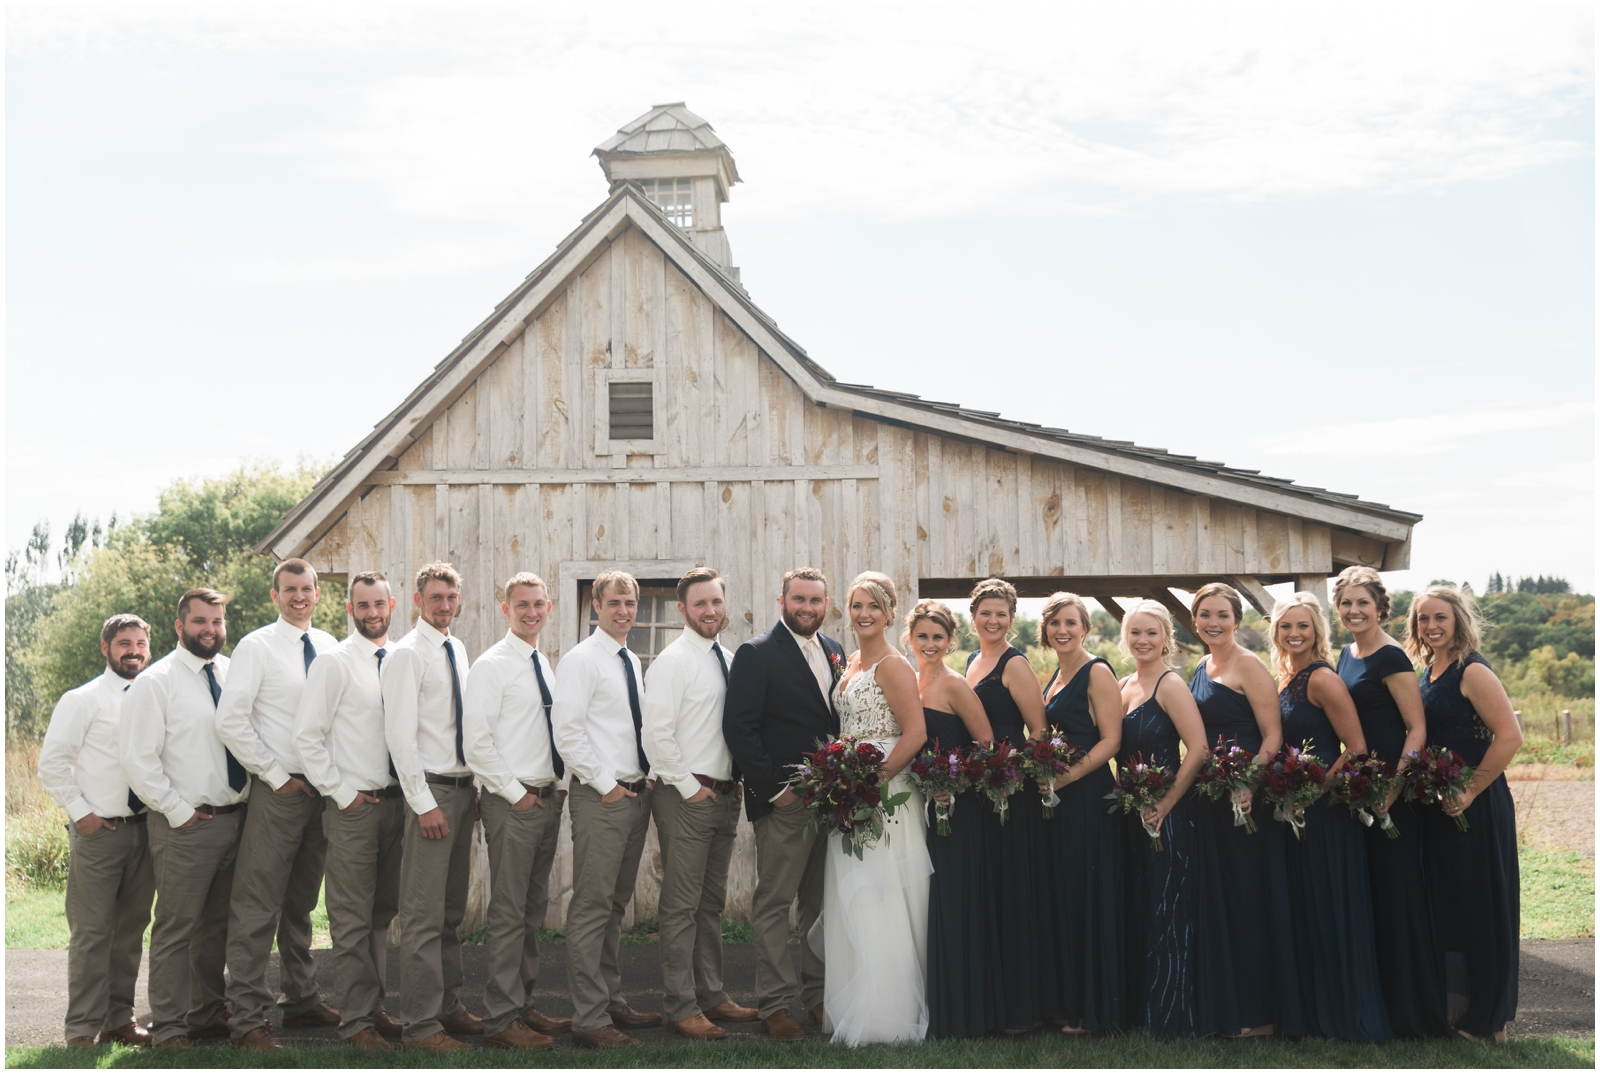 Minnesota-Wedding-Venue- Chaska-MN-Rustic-Barn-Weddings_0603.jpg